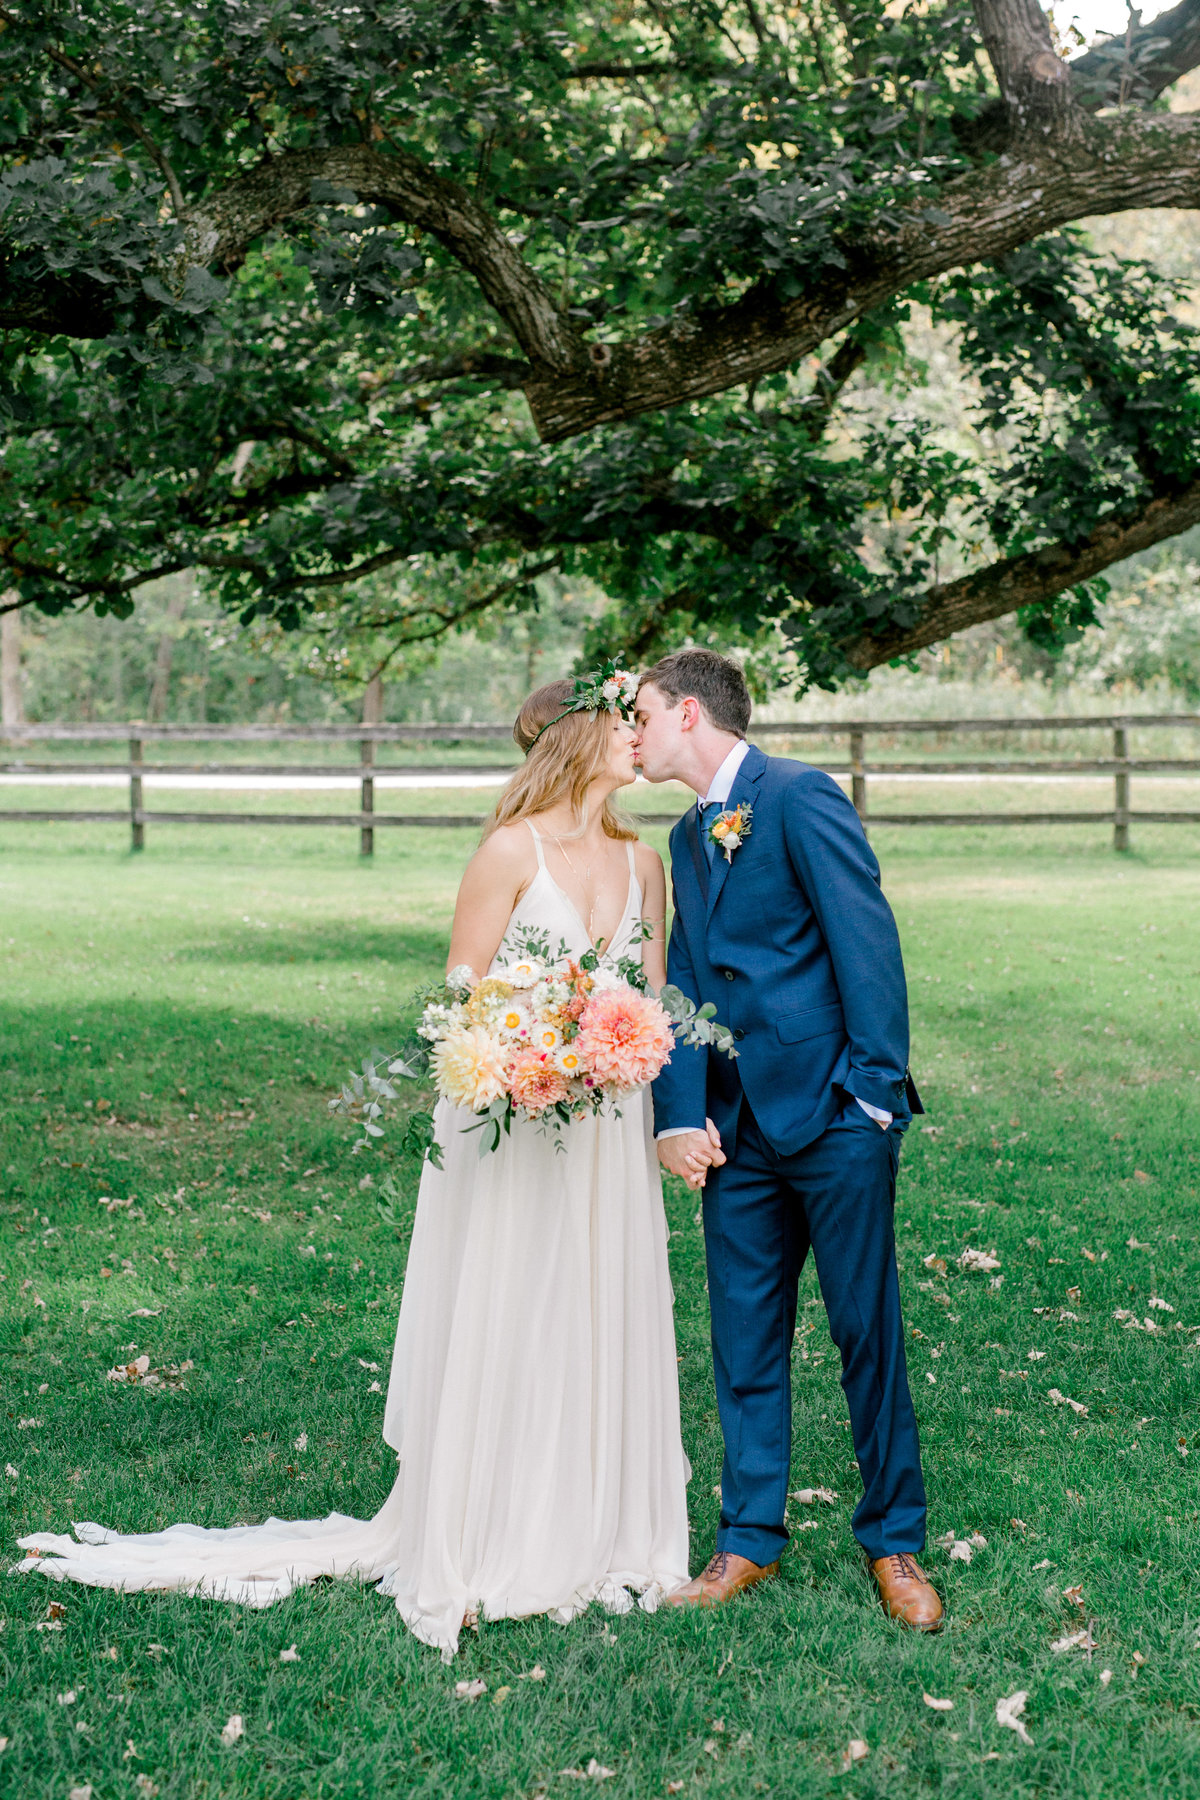 Fox and Fern Florals at Mayowood Stone Barn Bride in Carol Hannah Gown